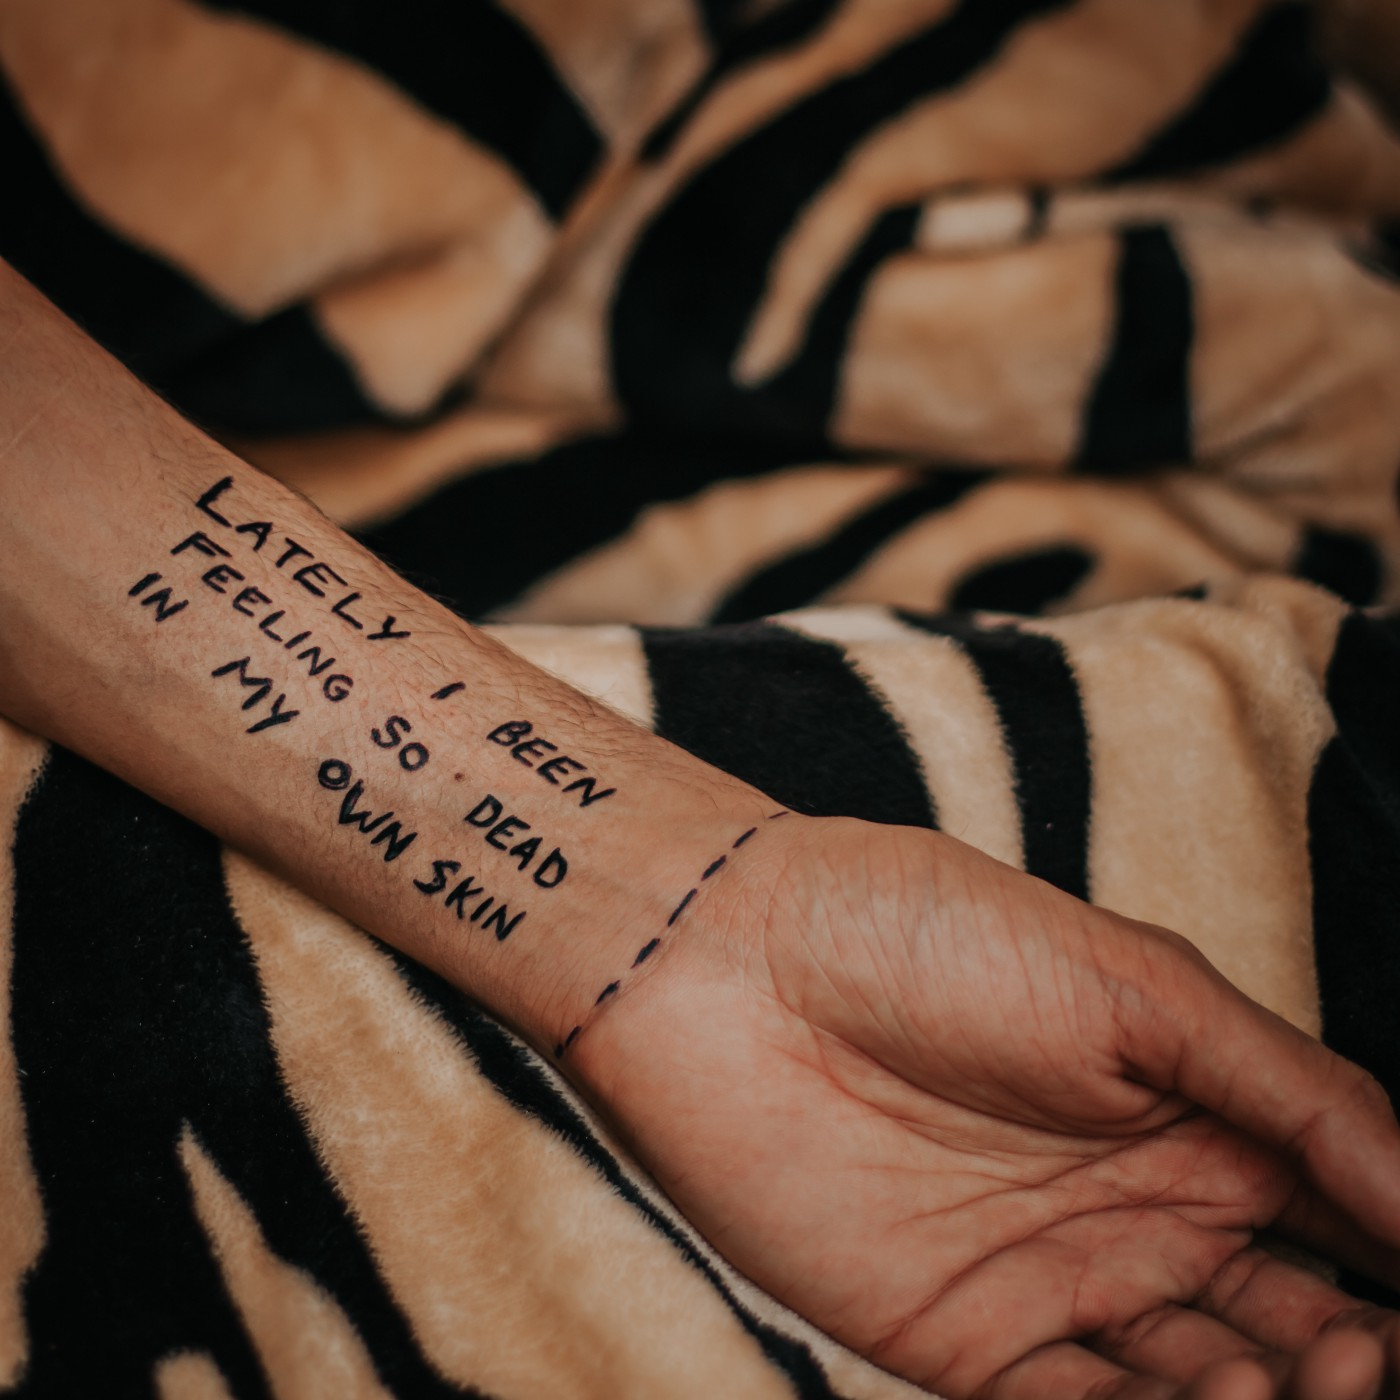 A hand with text written as: LATELY I BEEN FEELING SO DEAD IN MY OWN SKIN